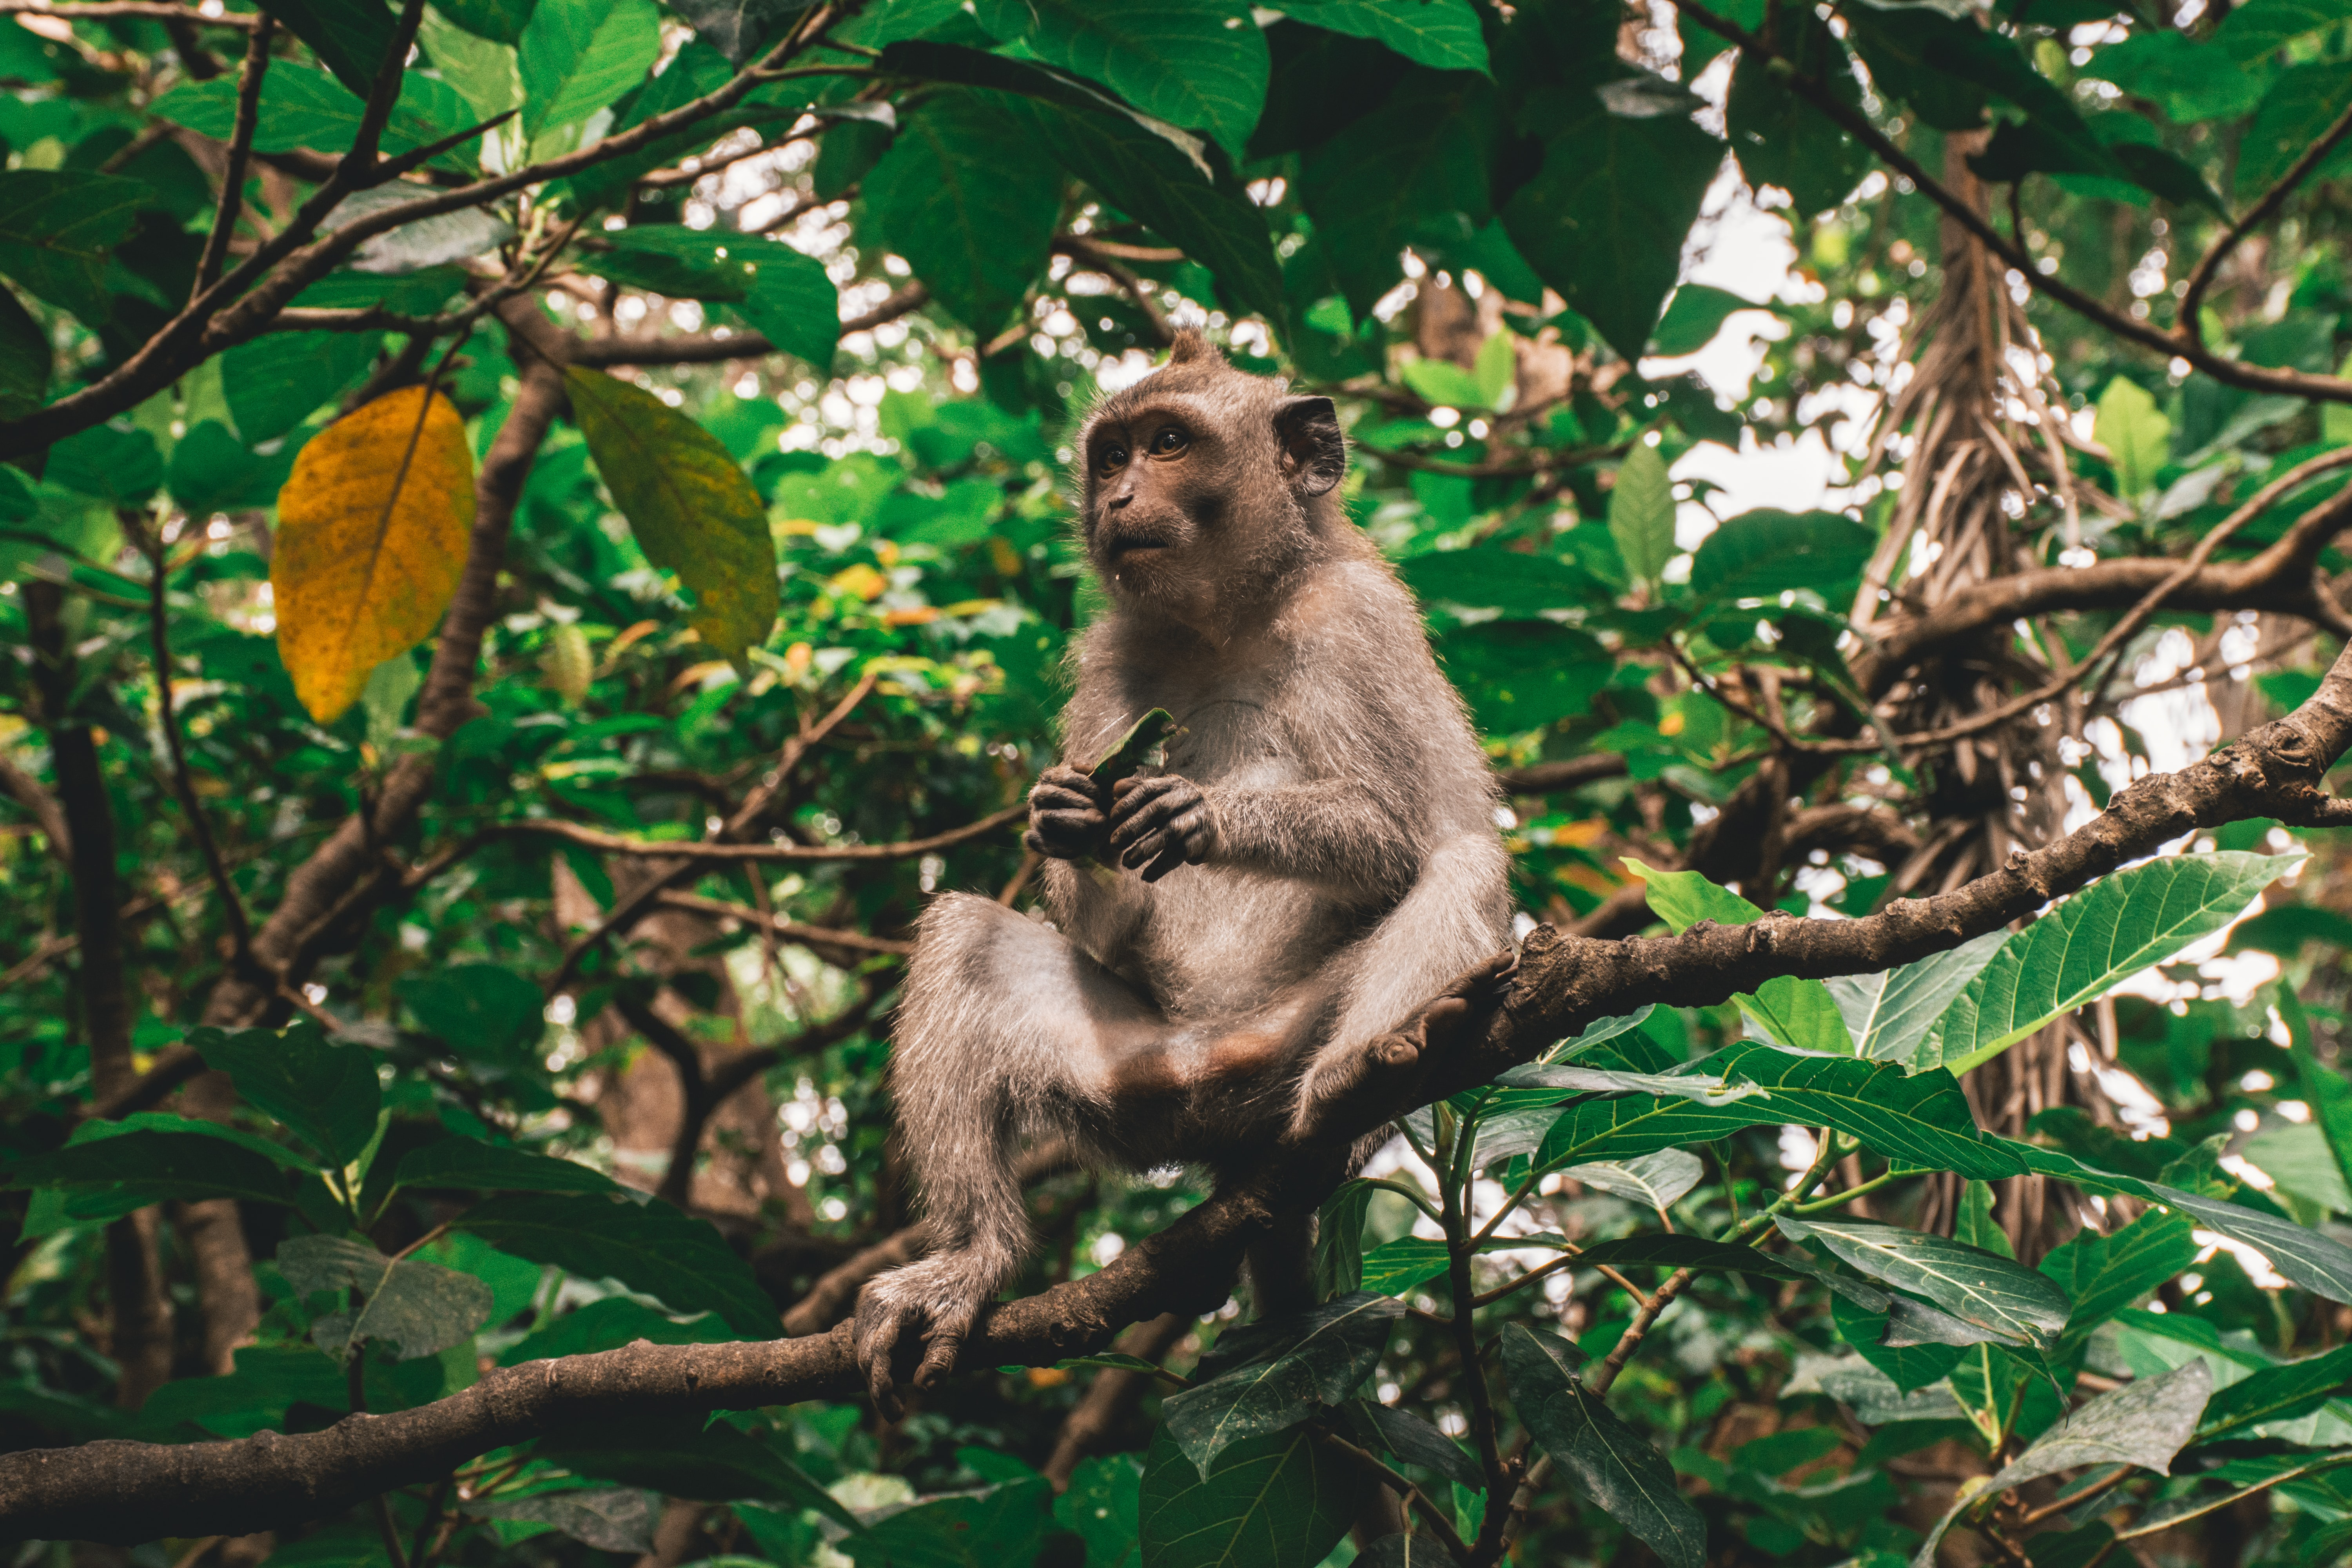 monkey sitting on branch